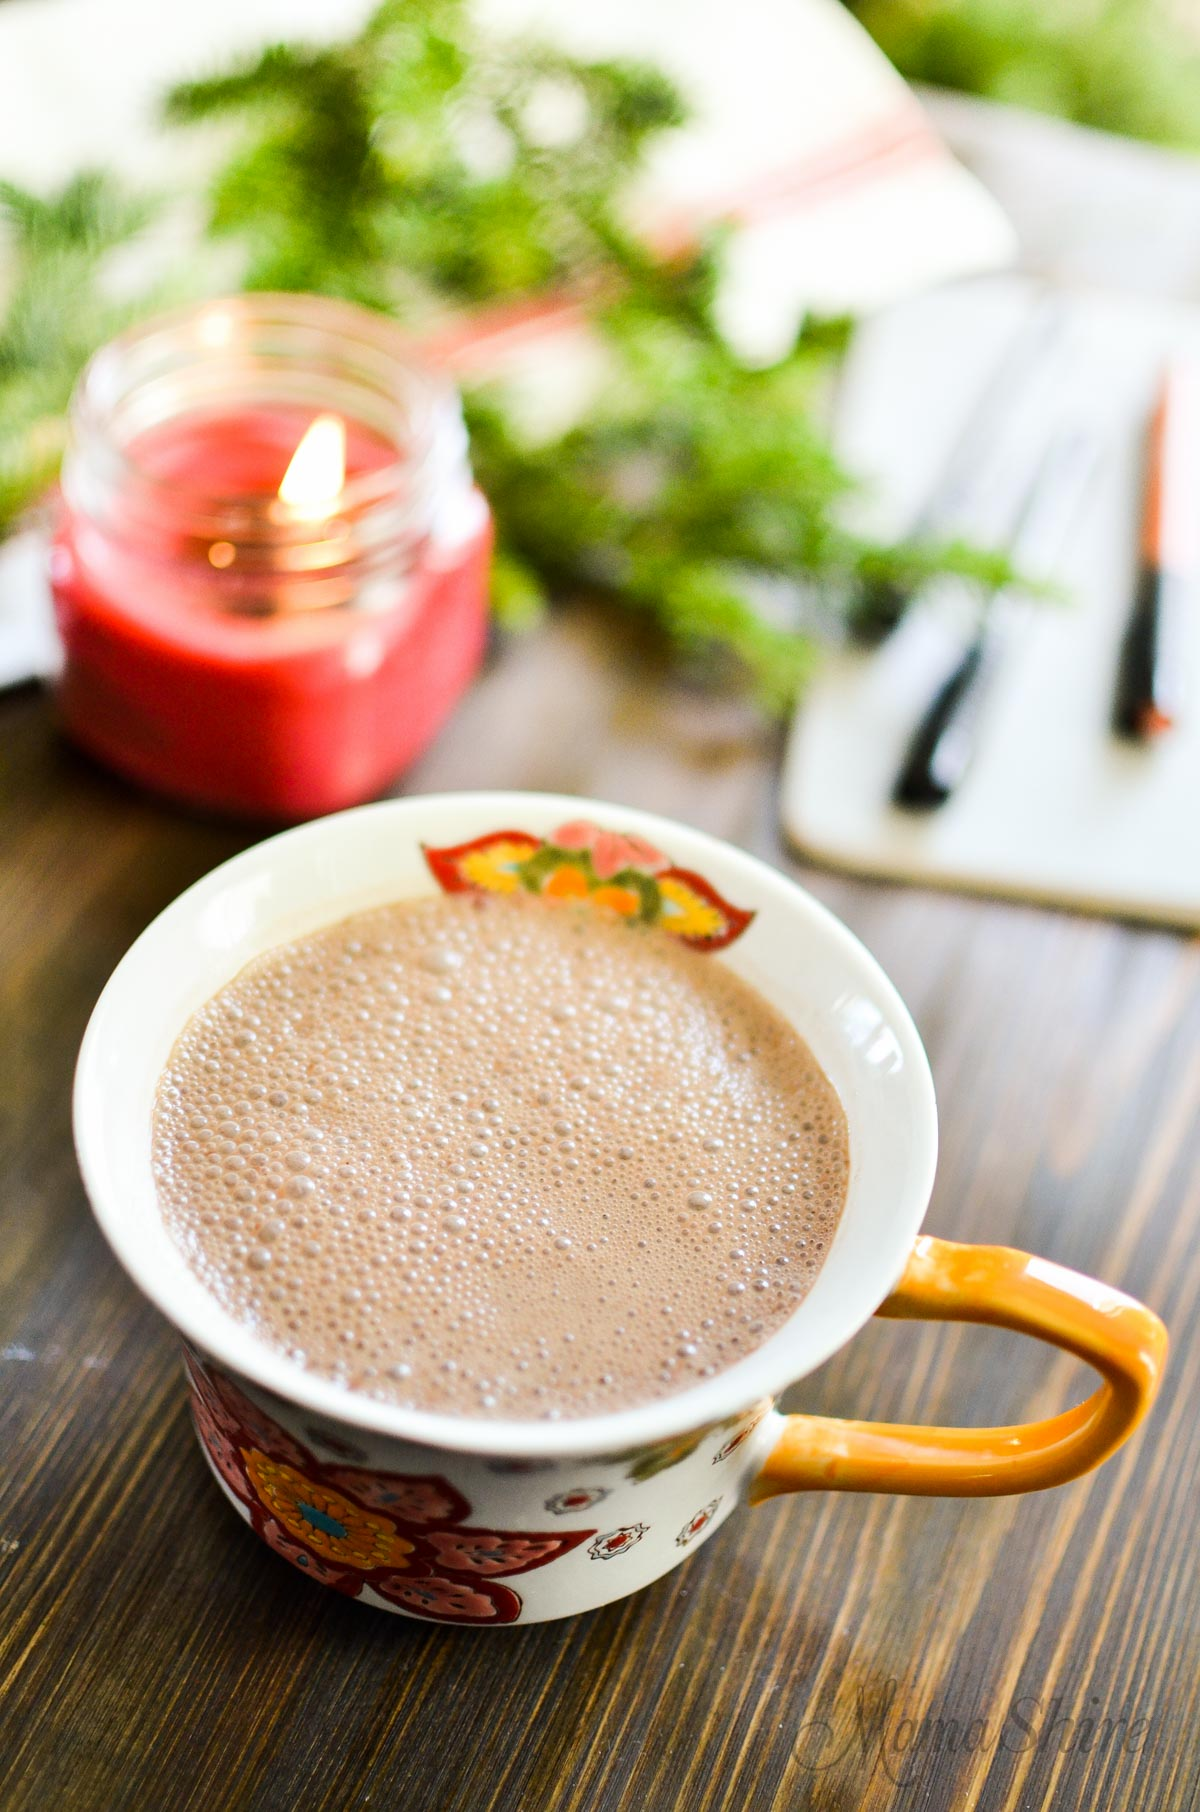 Dreamy Hot Chocolate Dairy Free Sugar Free - MamaShire.com